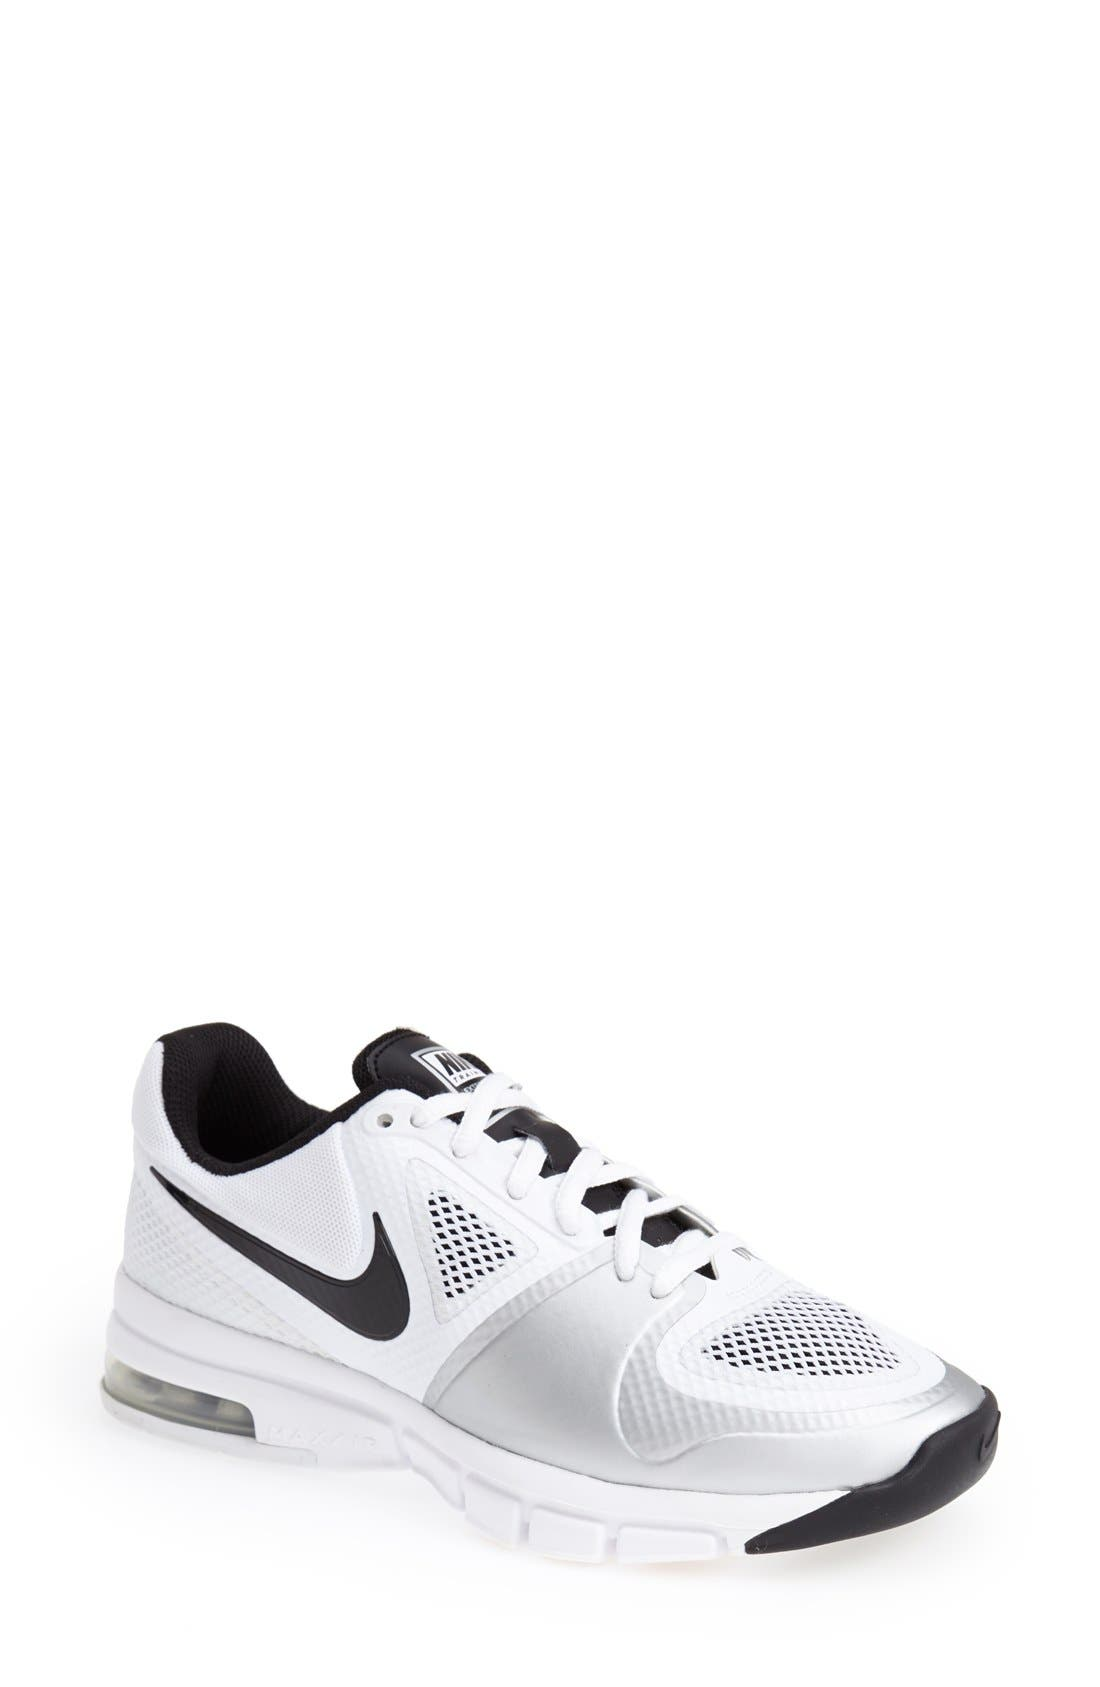 Main Image - Nike 'Air Extreme' Volleyball Shoe (Women)